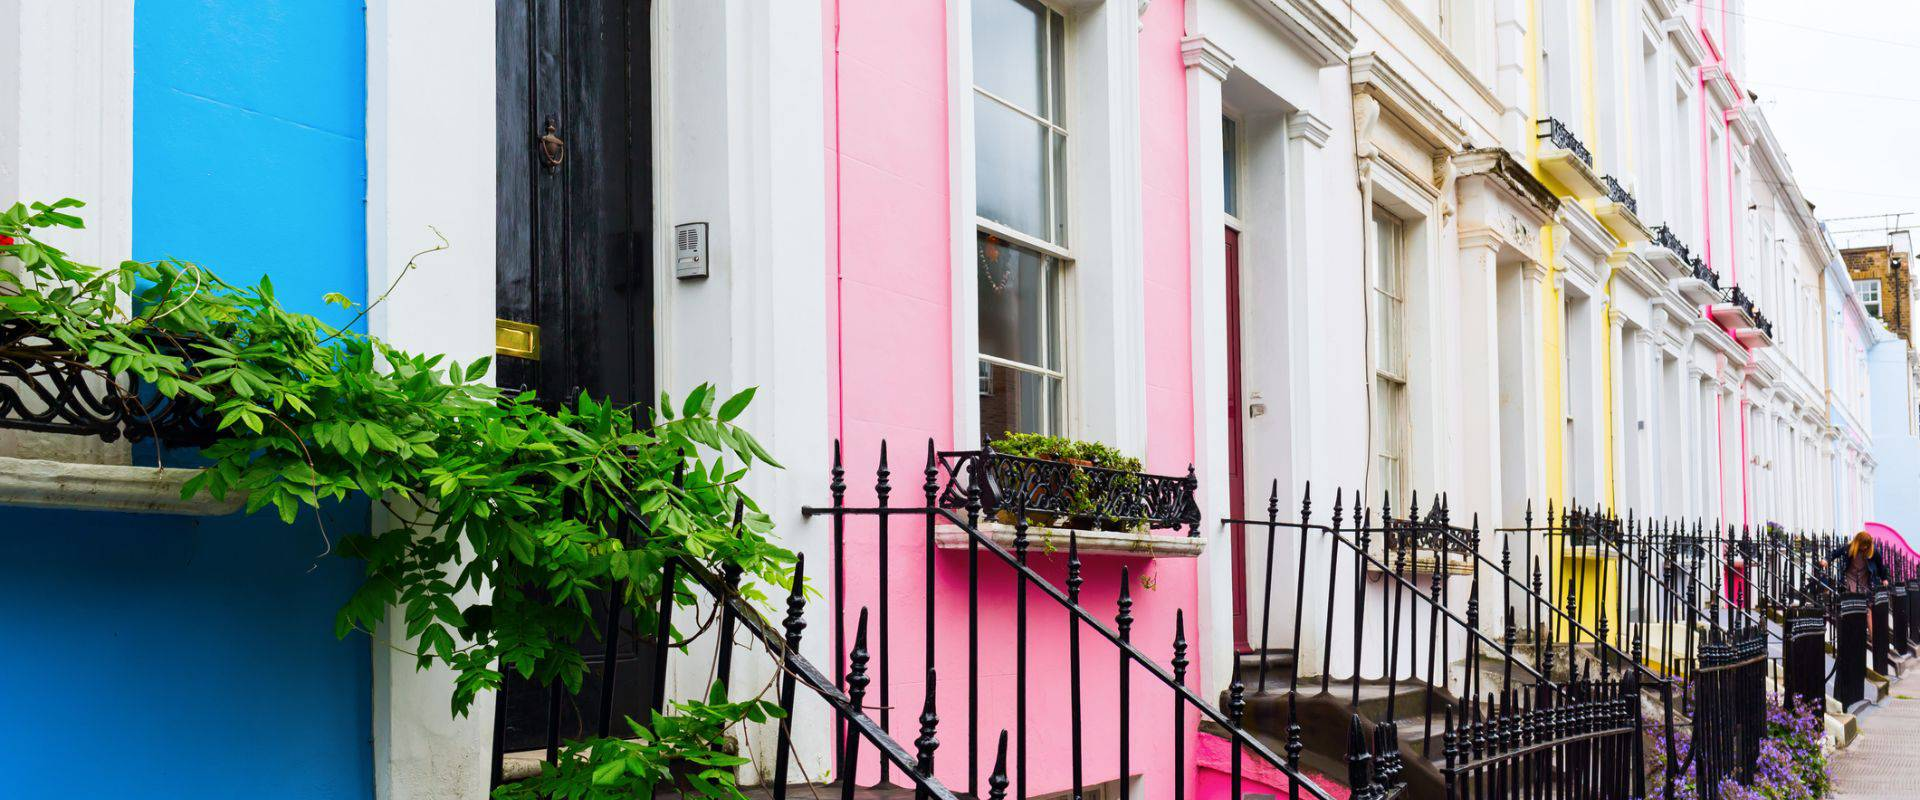 Gallery nox hotels | notting hill london